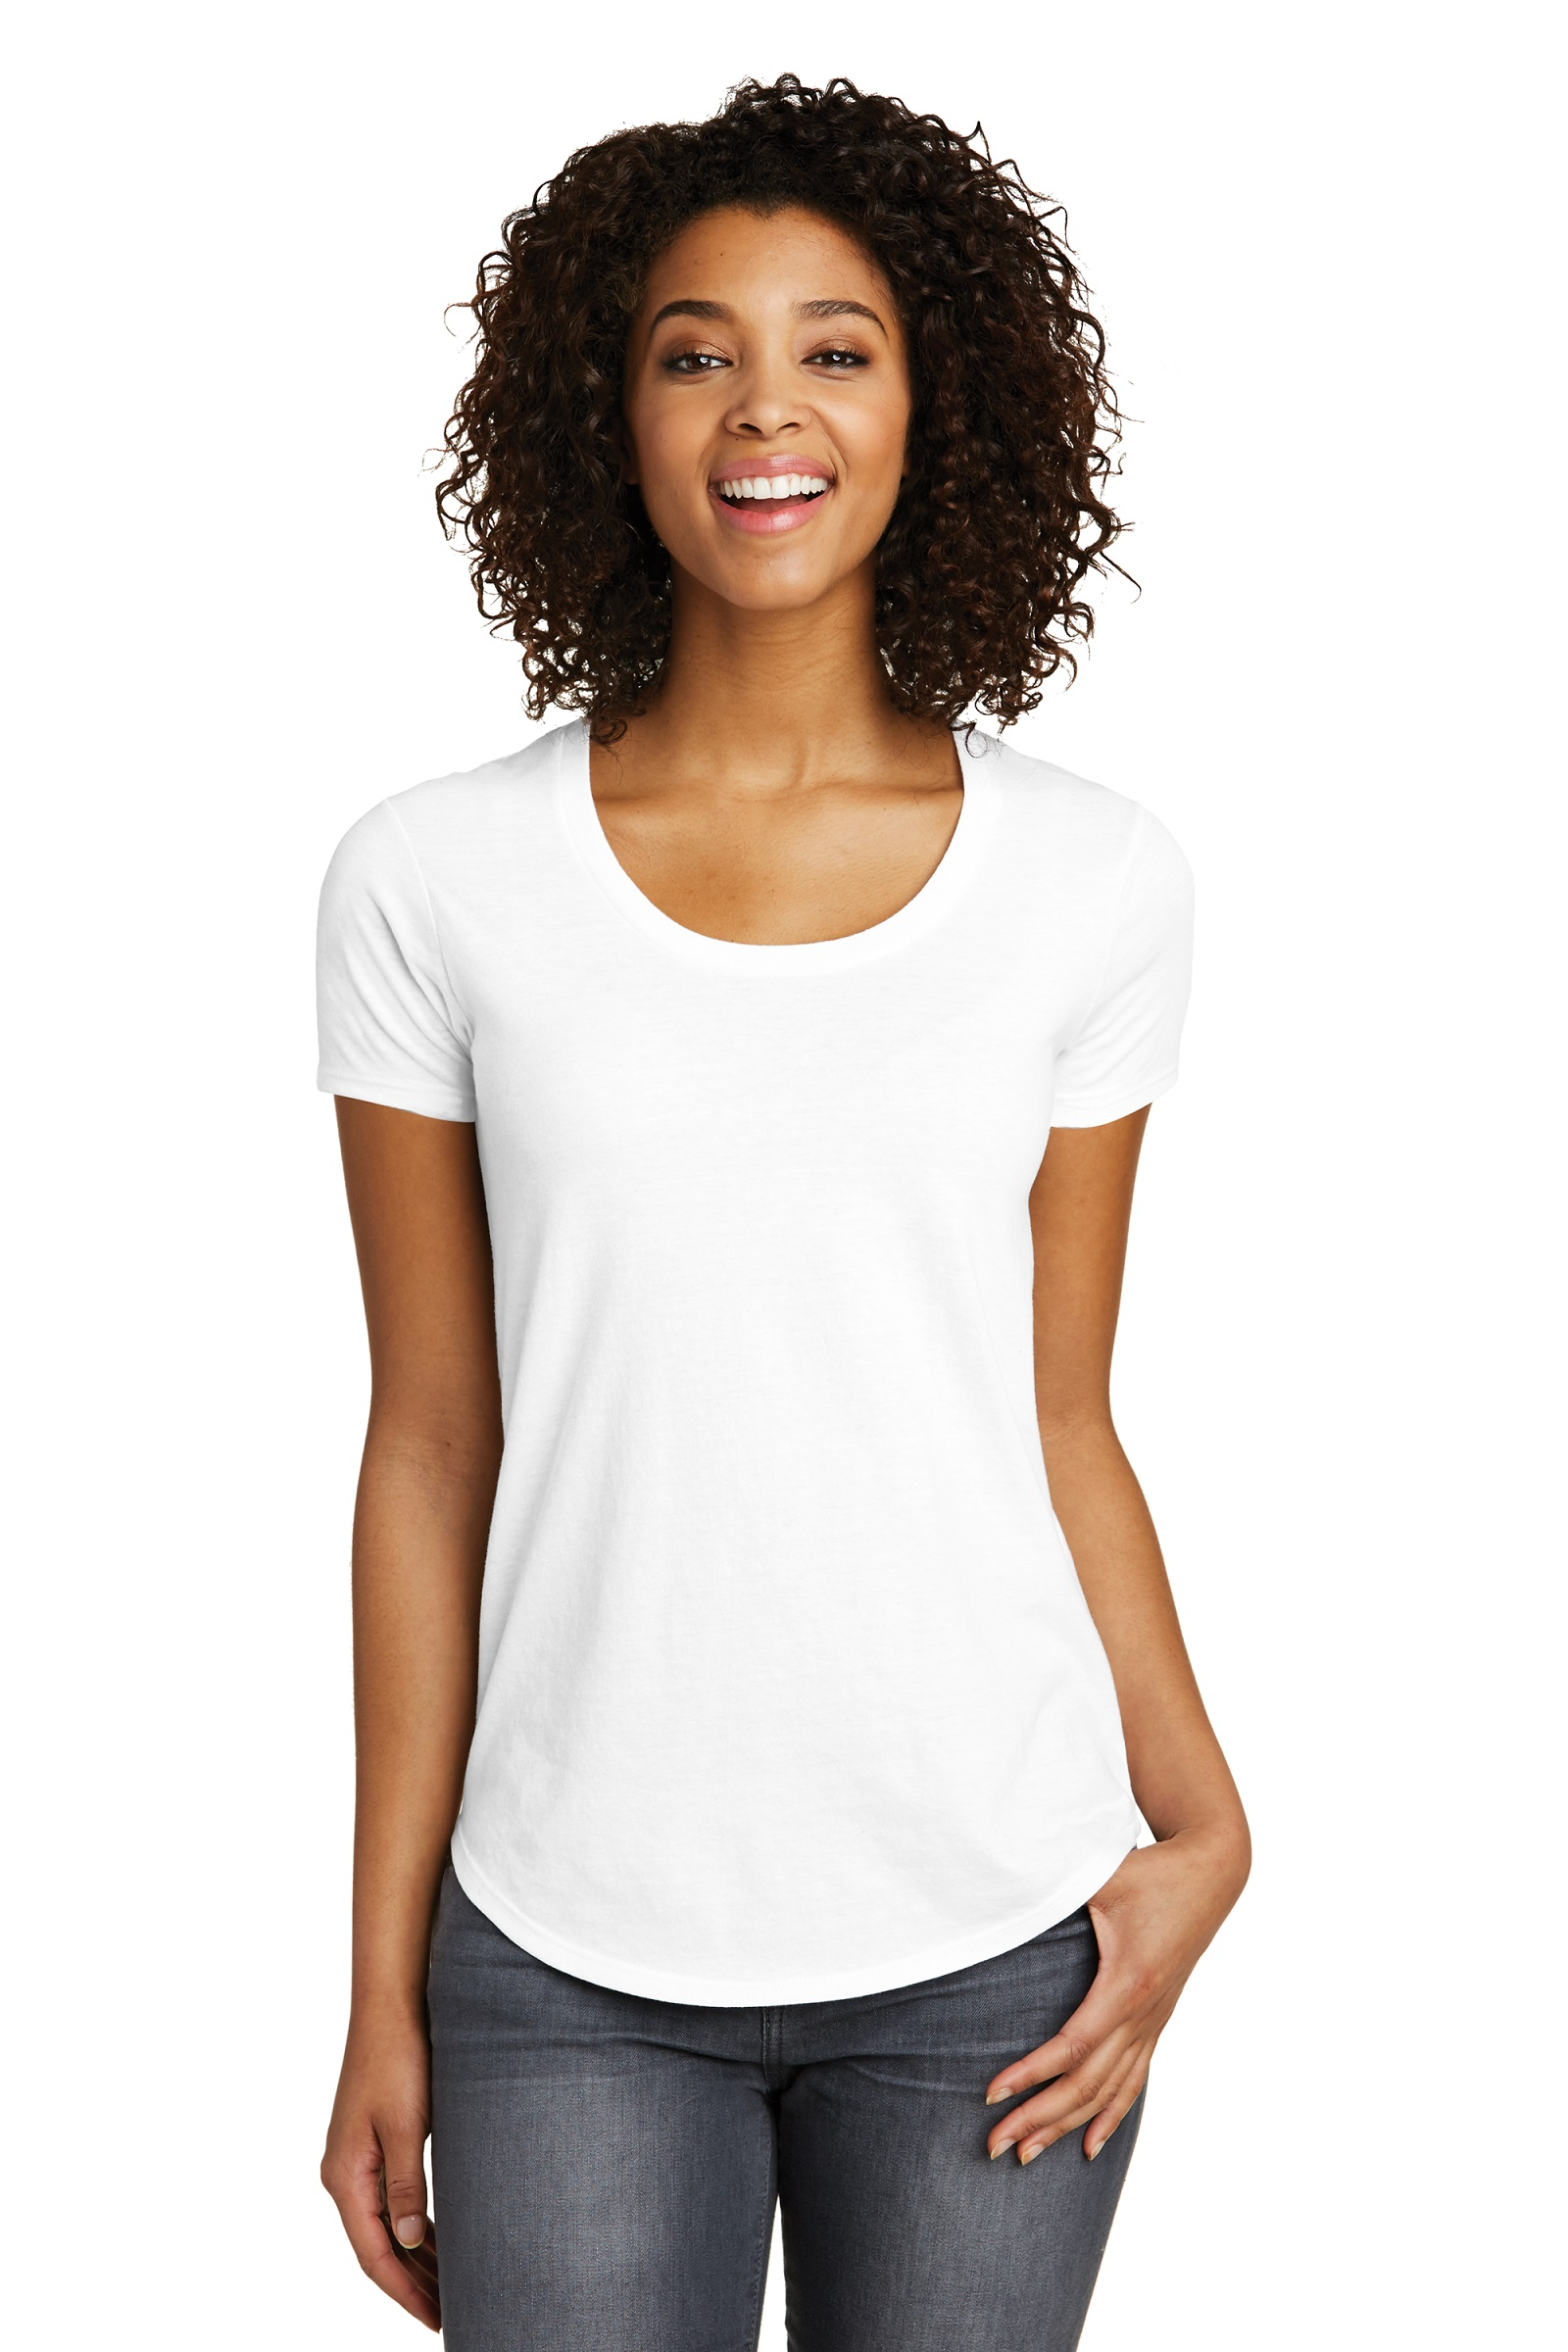 District Printed  Women's Scoop Neck Very Important Tee